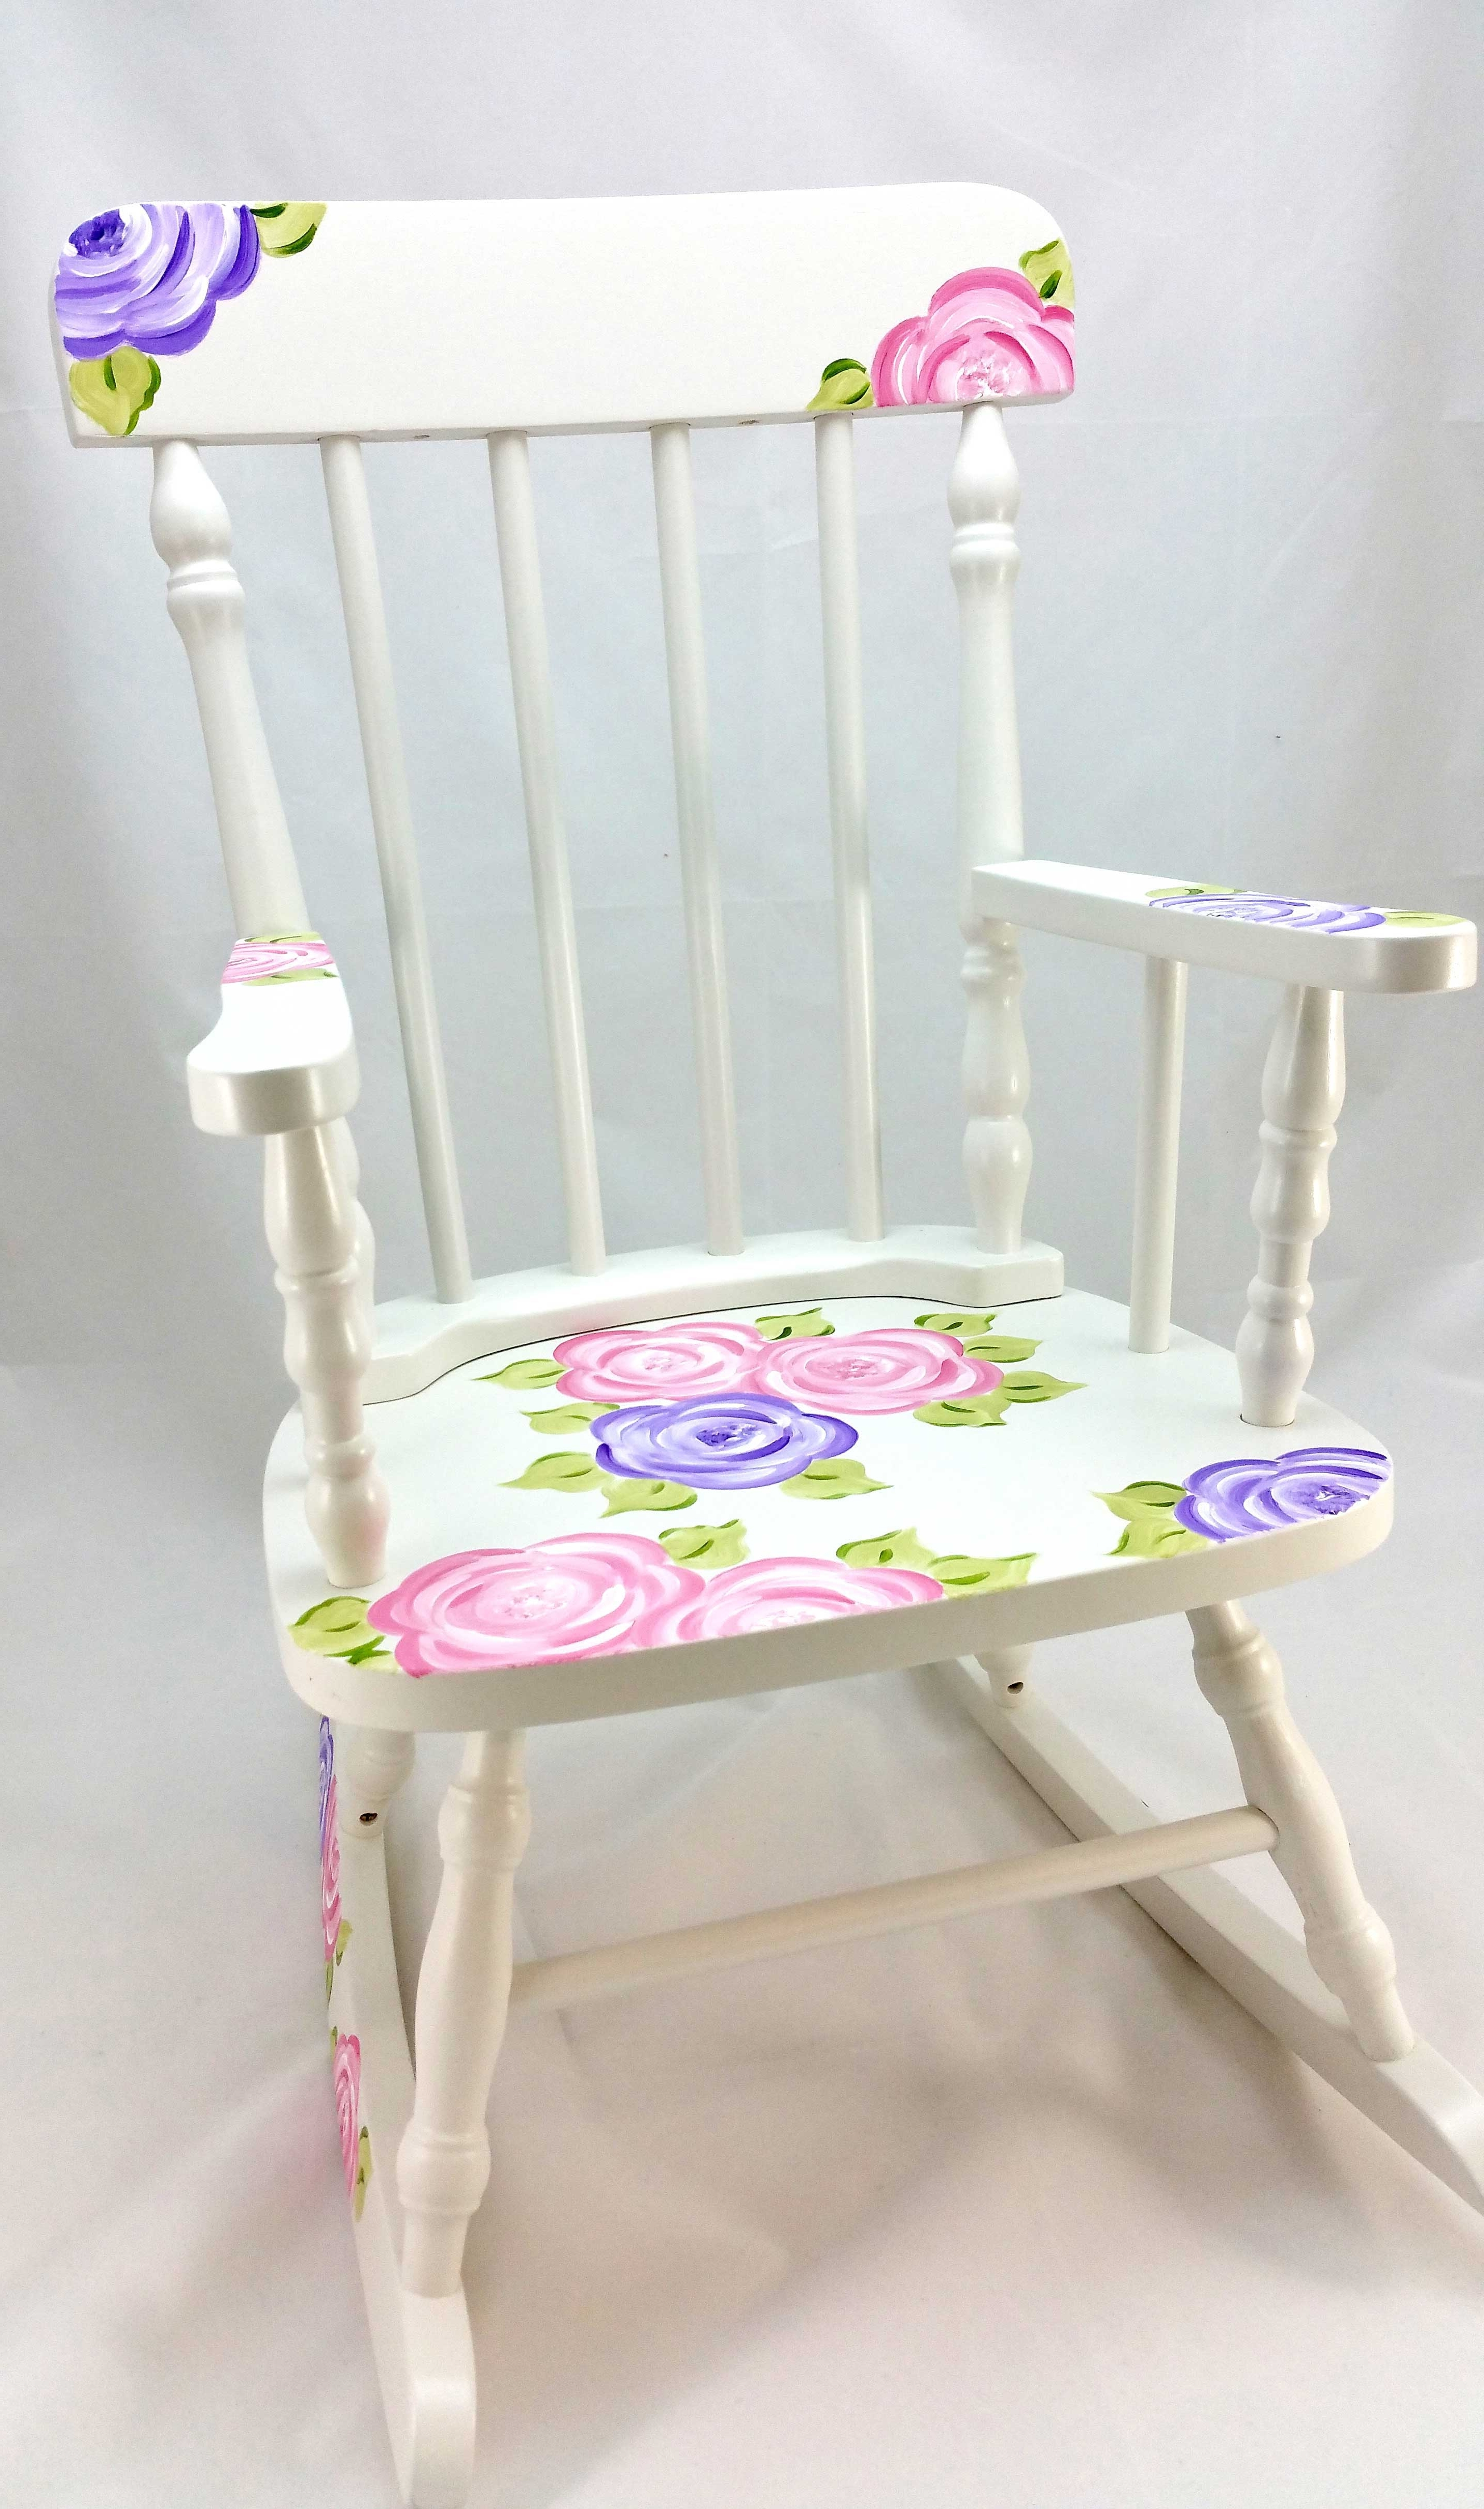 Most Recent Mod Roses Personalized Rocking Chair – Purple Pumpkin Gifts Inside Rocking Chairs At Roses (View 5 of 20)